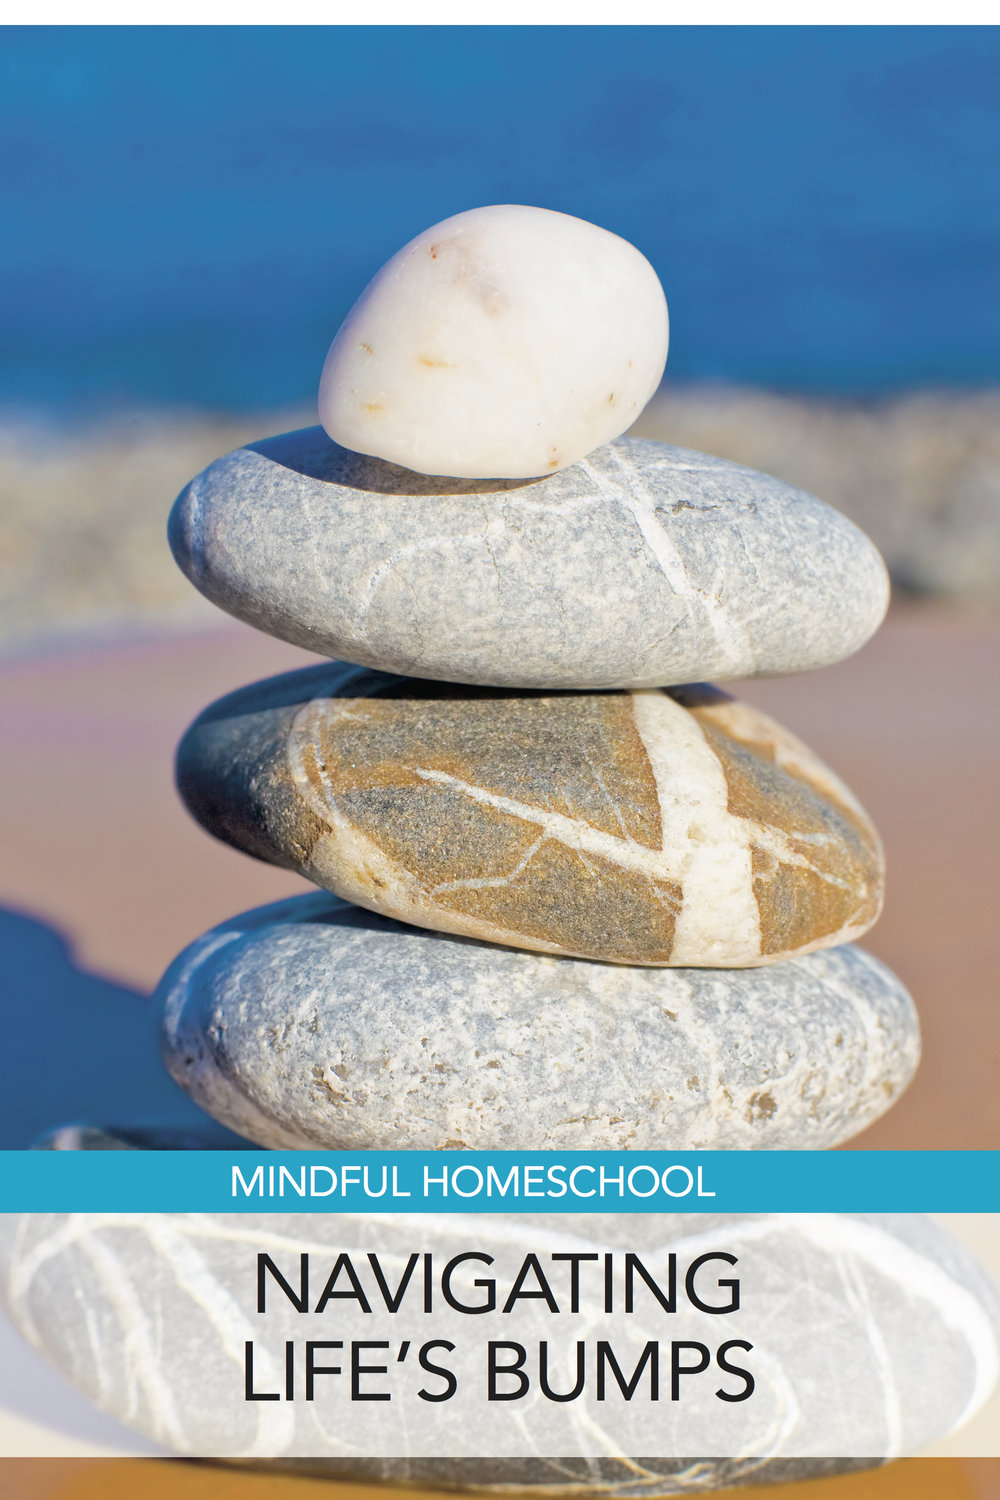 Mindful Homeschool: Navigating Life's Bumps